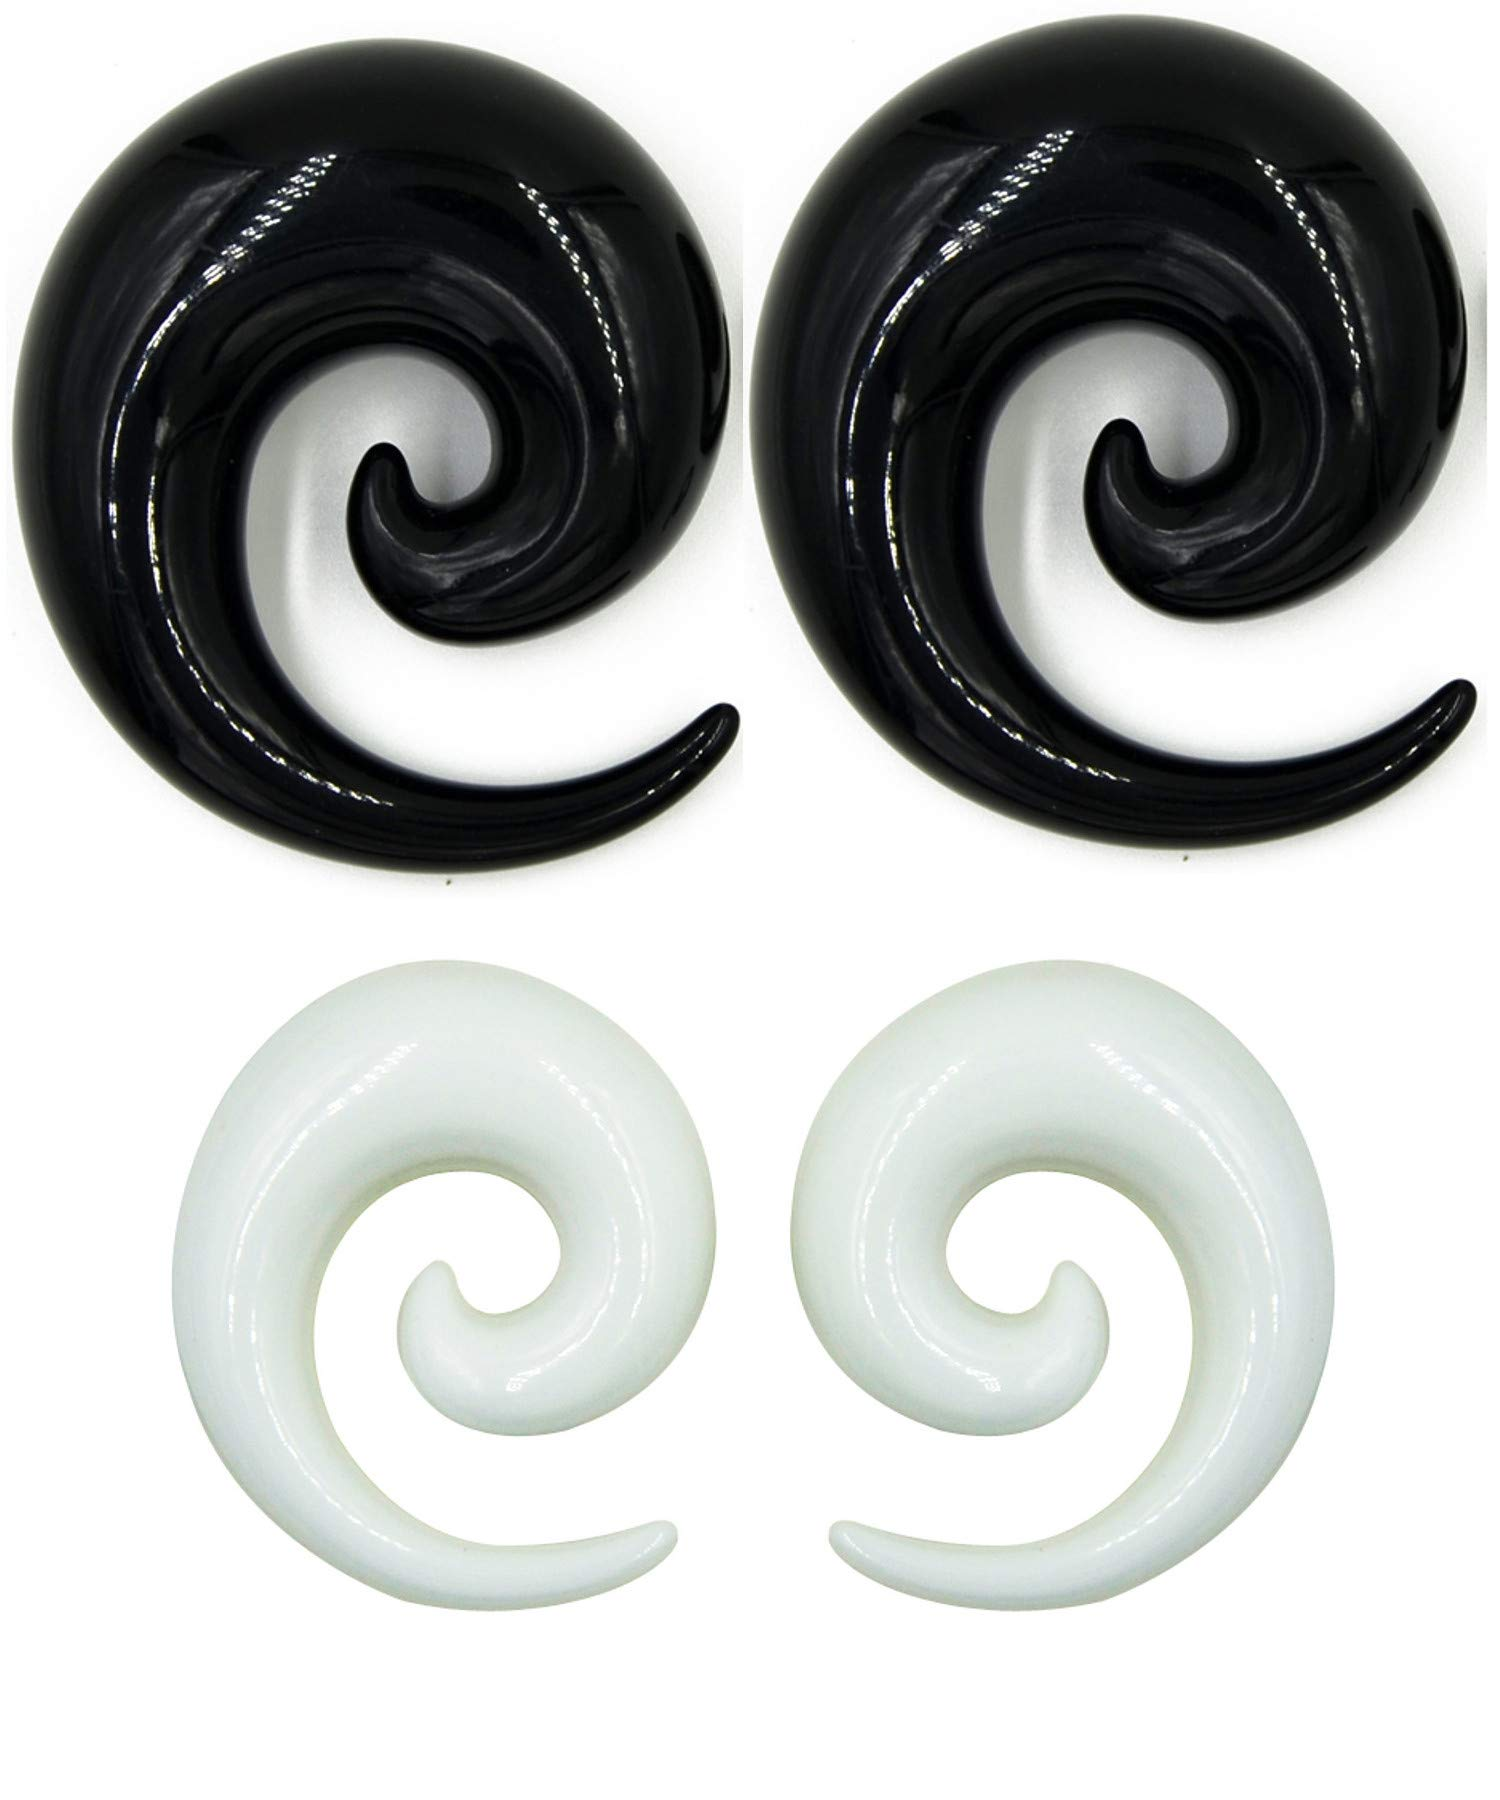 Zaya Body Jewelry 2 Pairs Black White Ear Tapers Spirals Horseshoes Gauges 24mm 22mm 20mm 18mm 16mm 14mm 12mm 10mm (20mm) by Zaya Body Jewelry